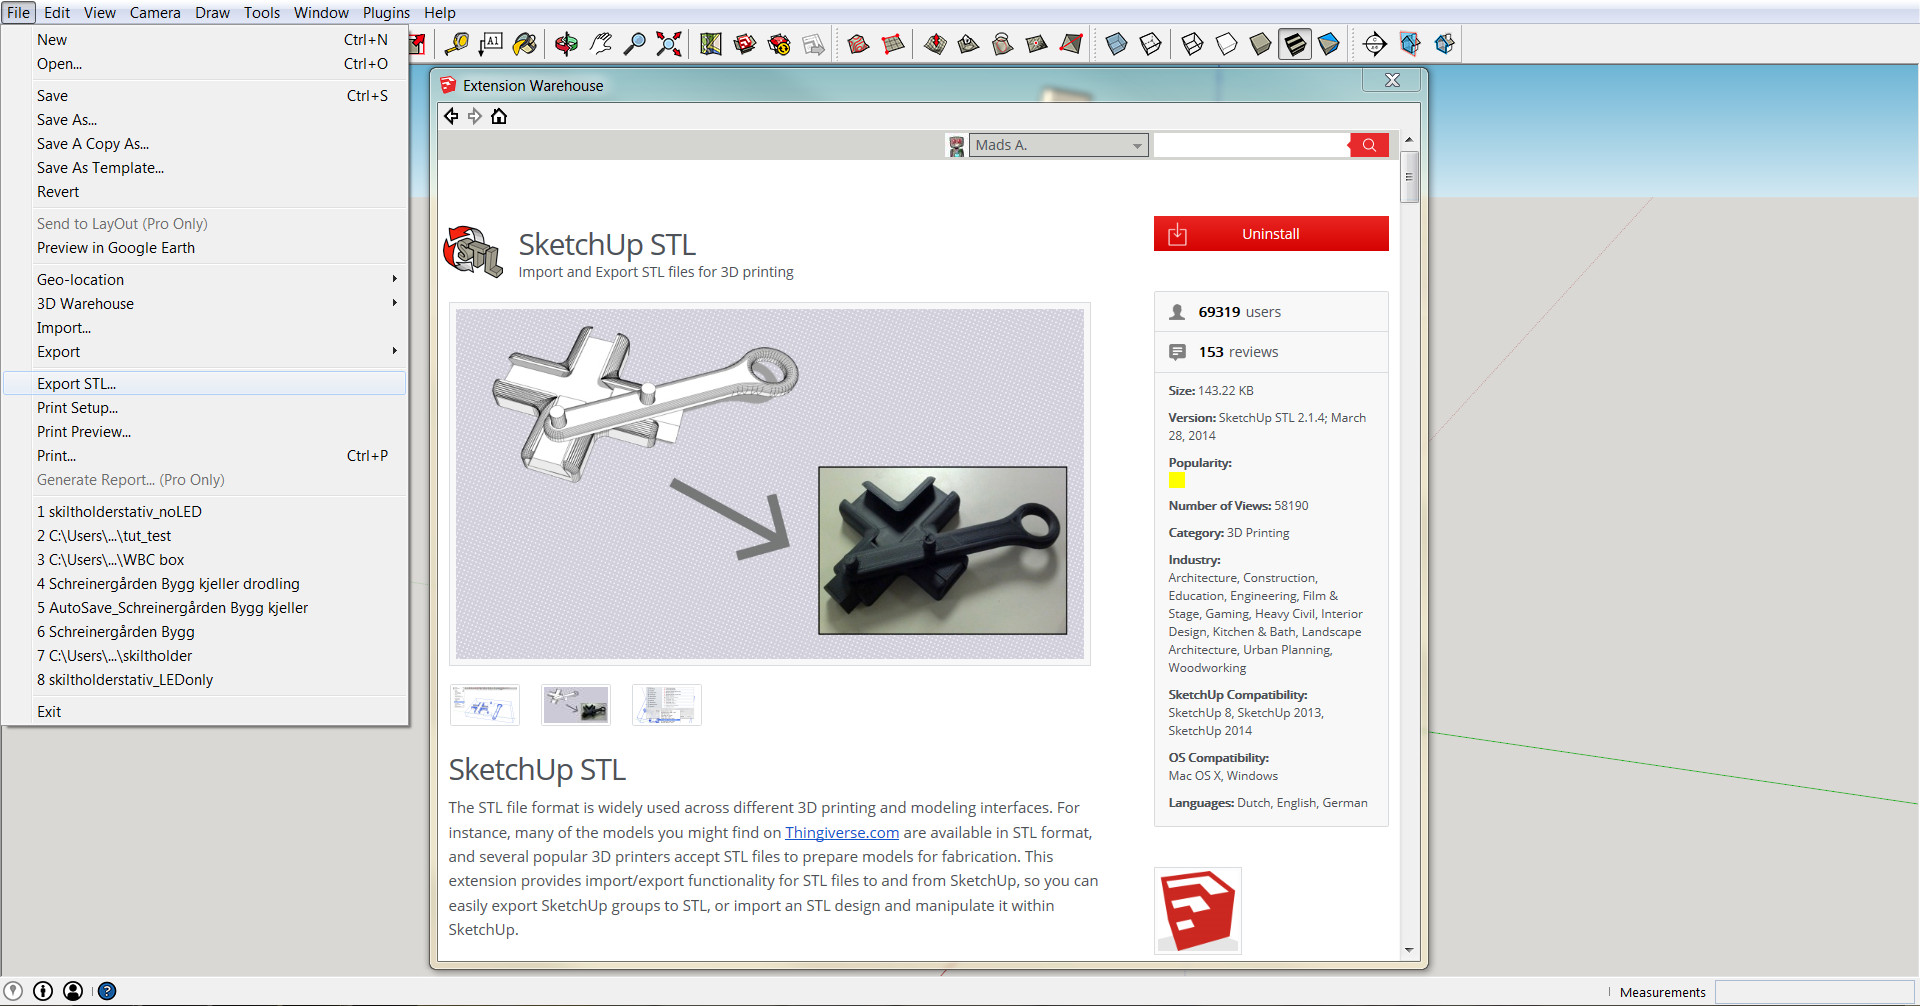 Tutorial using free sketchup software for 3d printing for Sketchup import stl